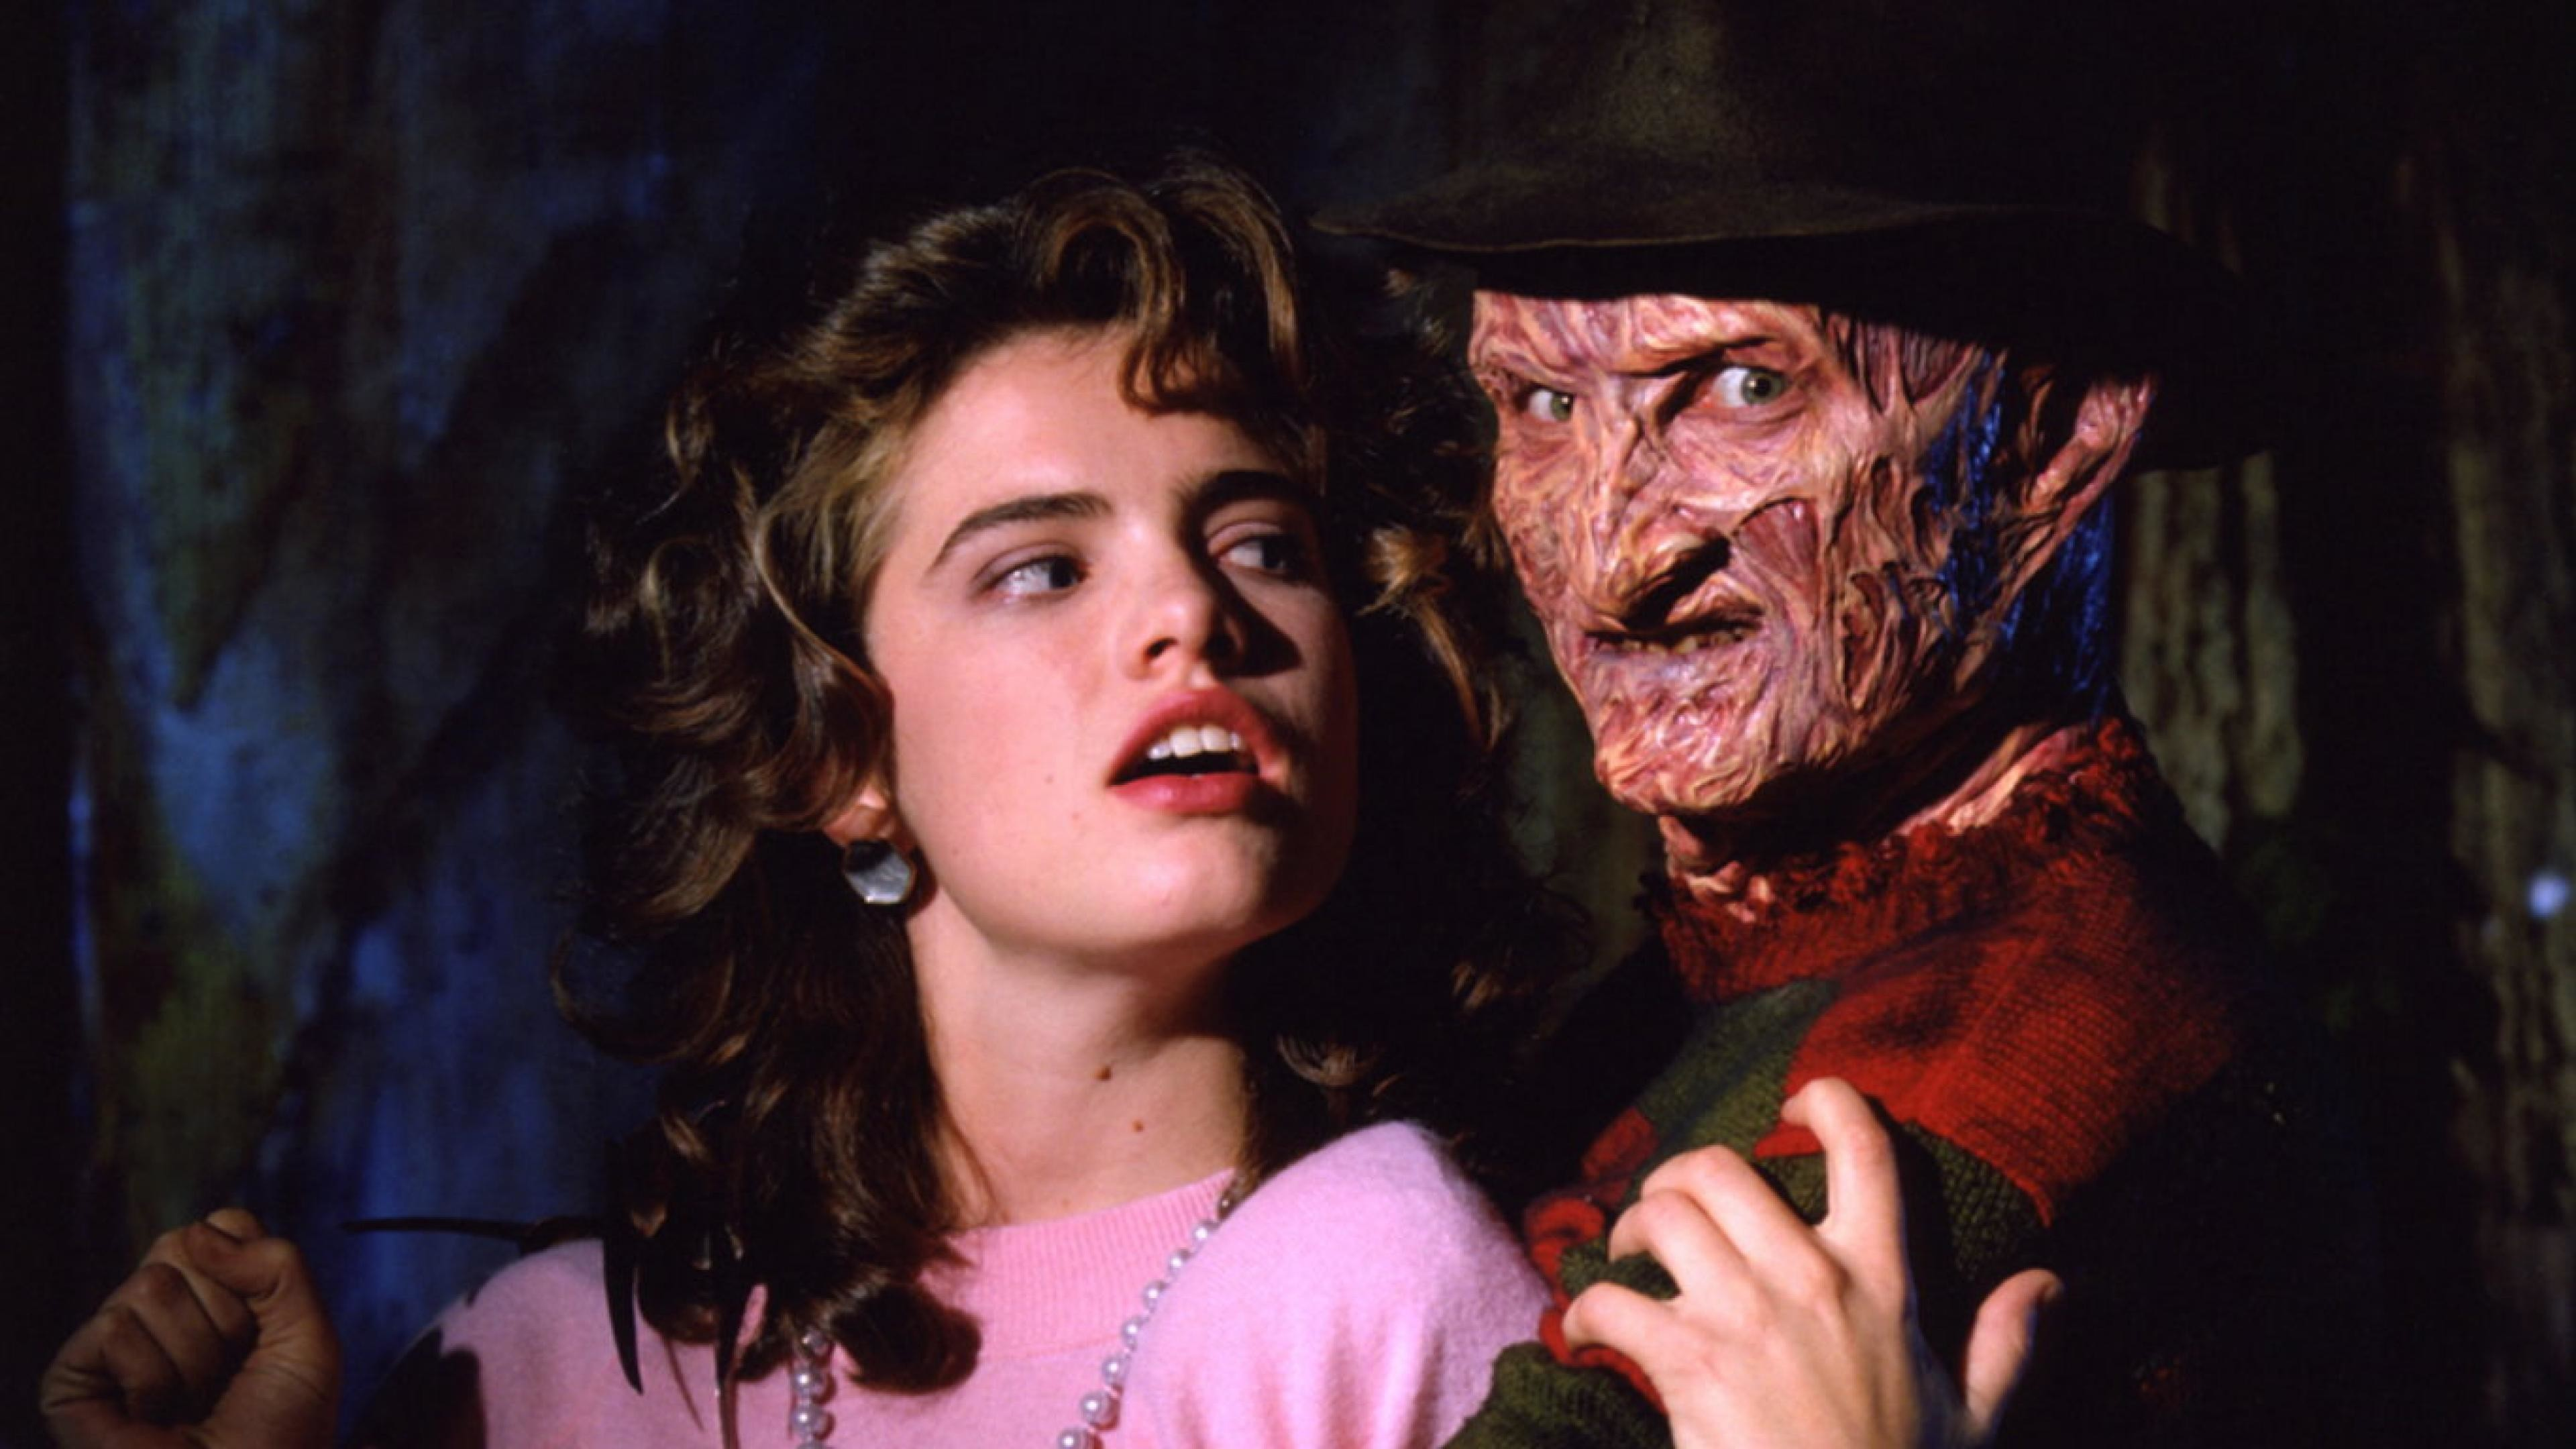 … freddy krueger wallpapers images photos pictures backgrounds …